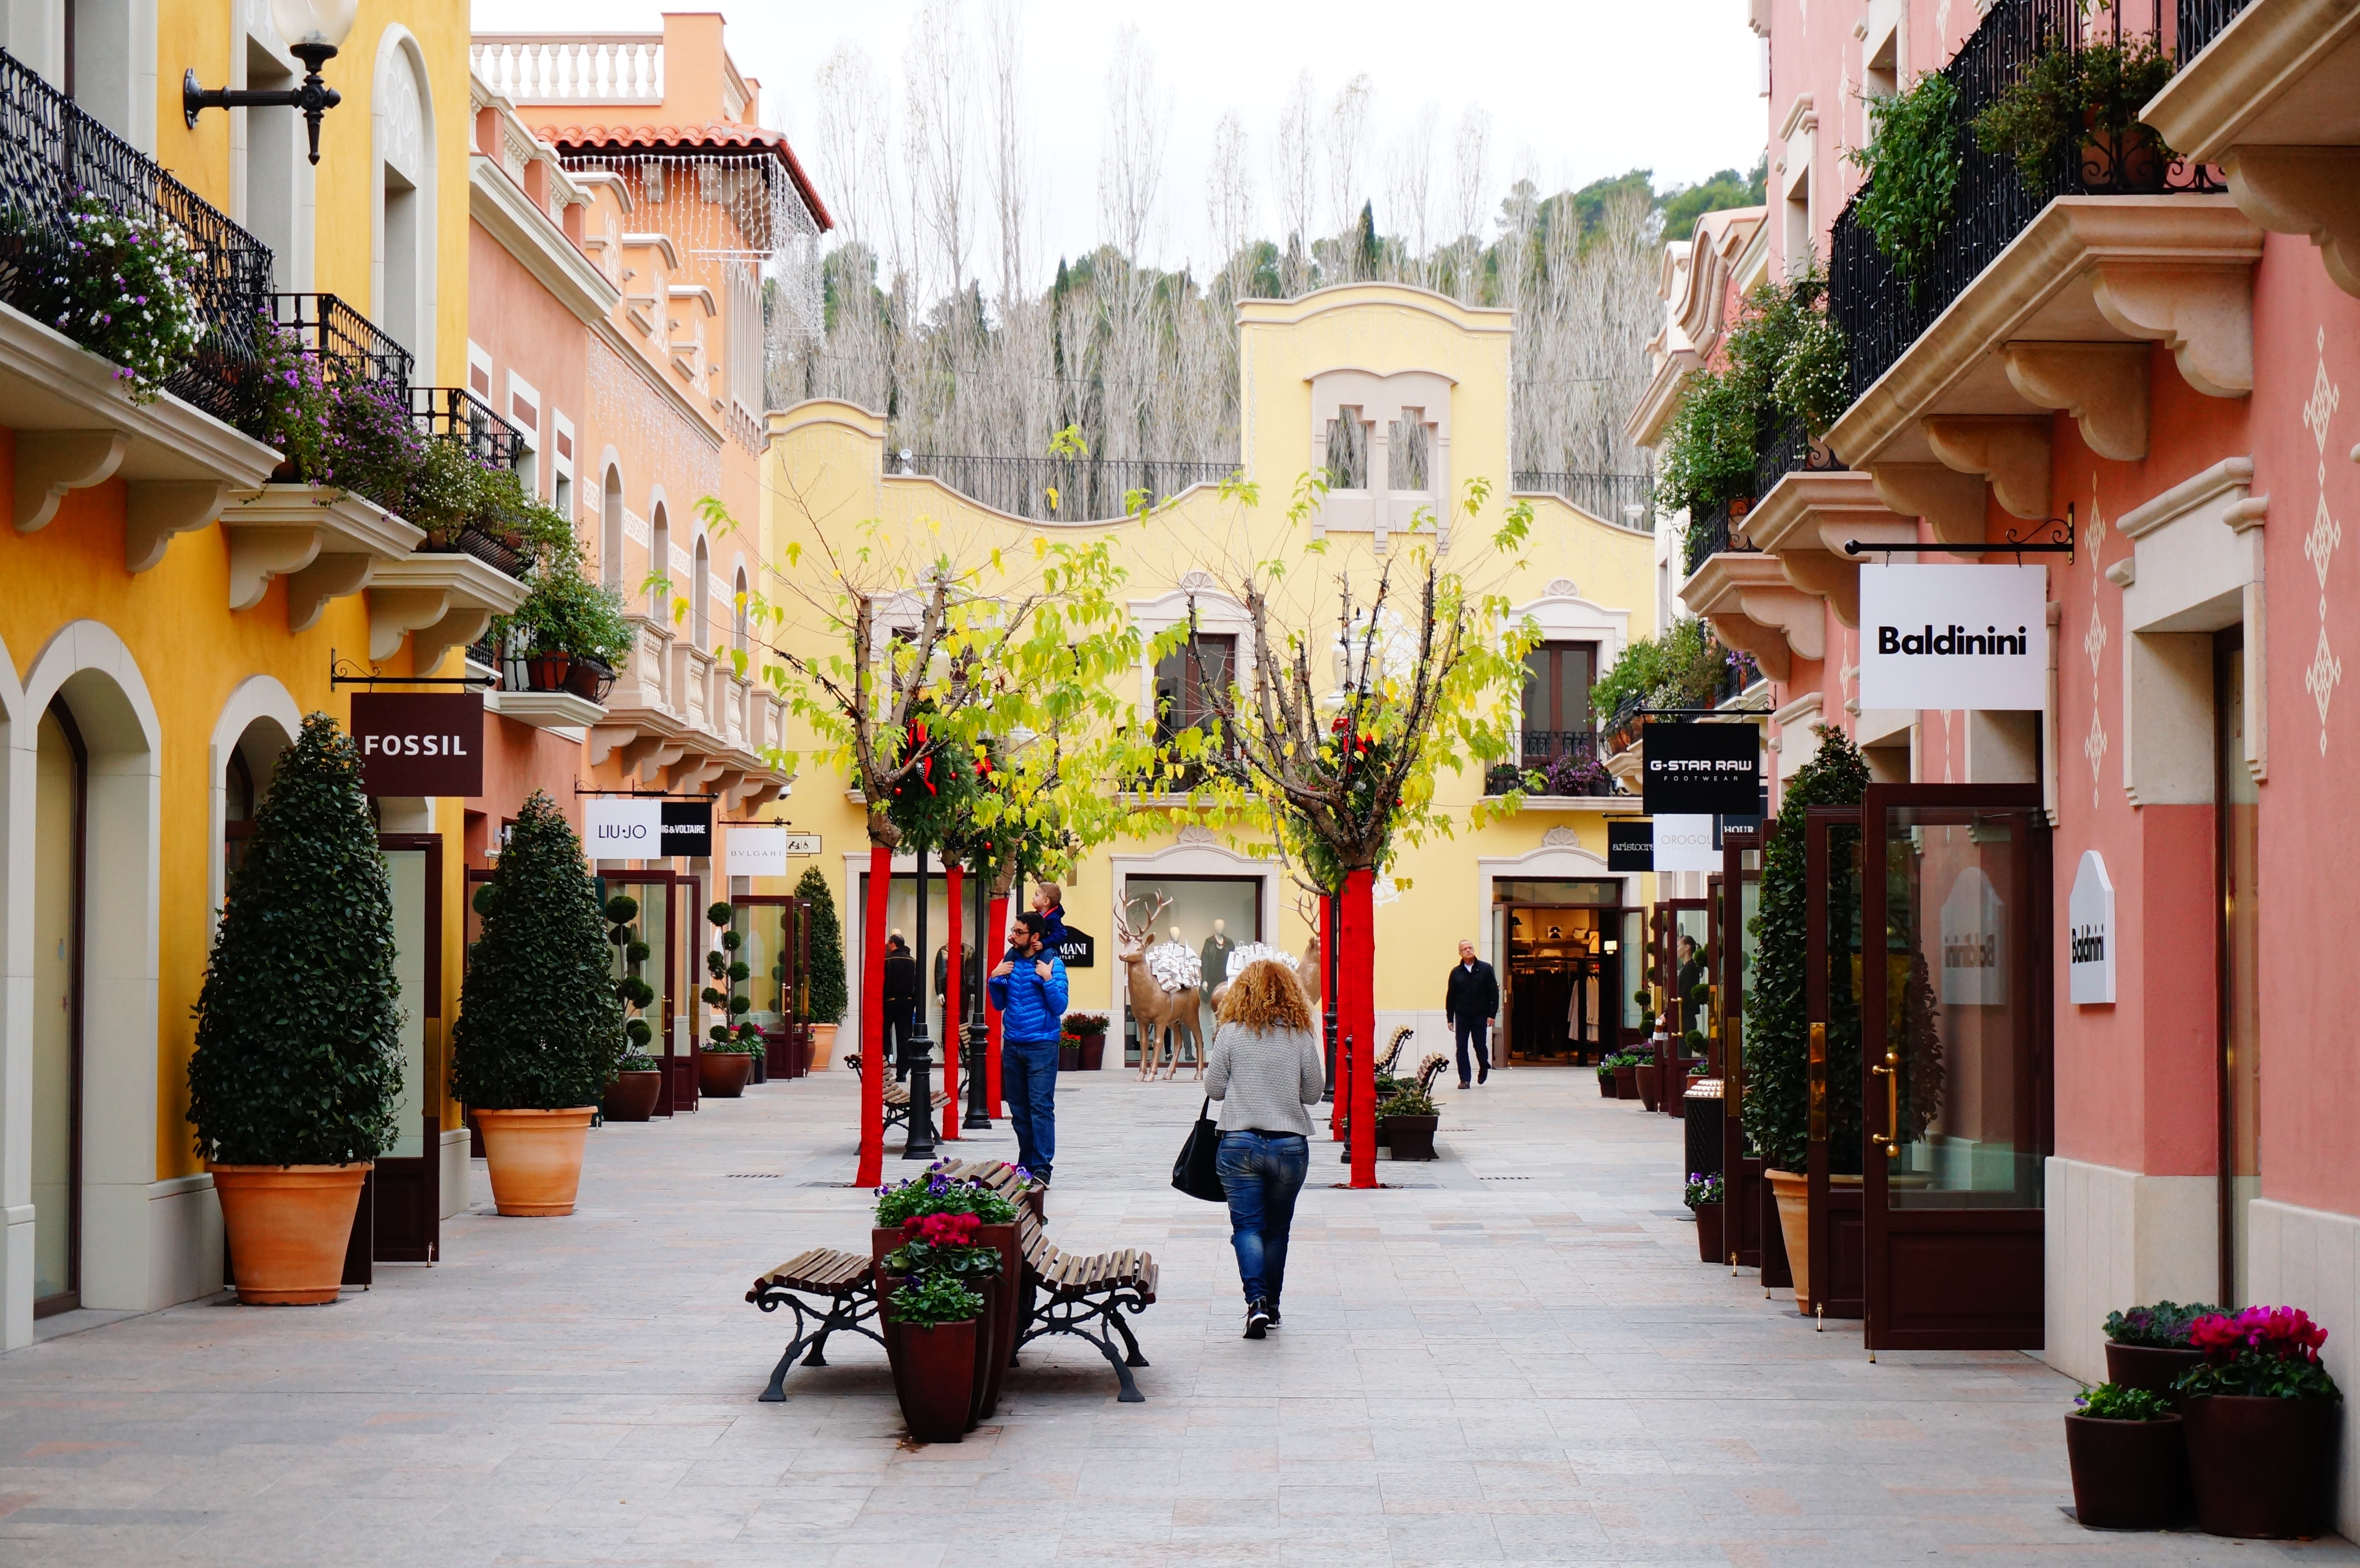 outlet di moda la roca village barcelona tour in bus